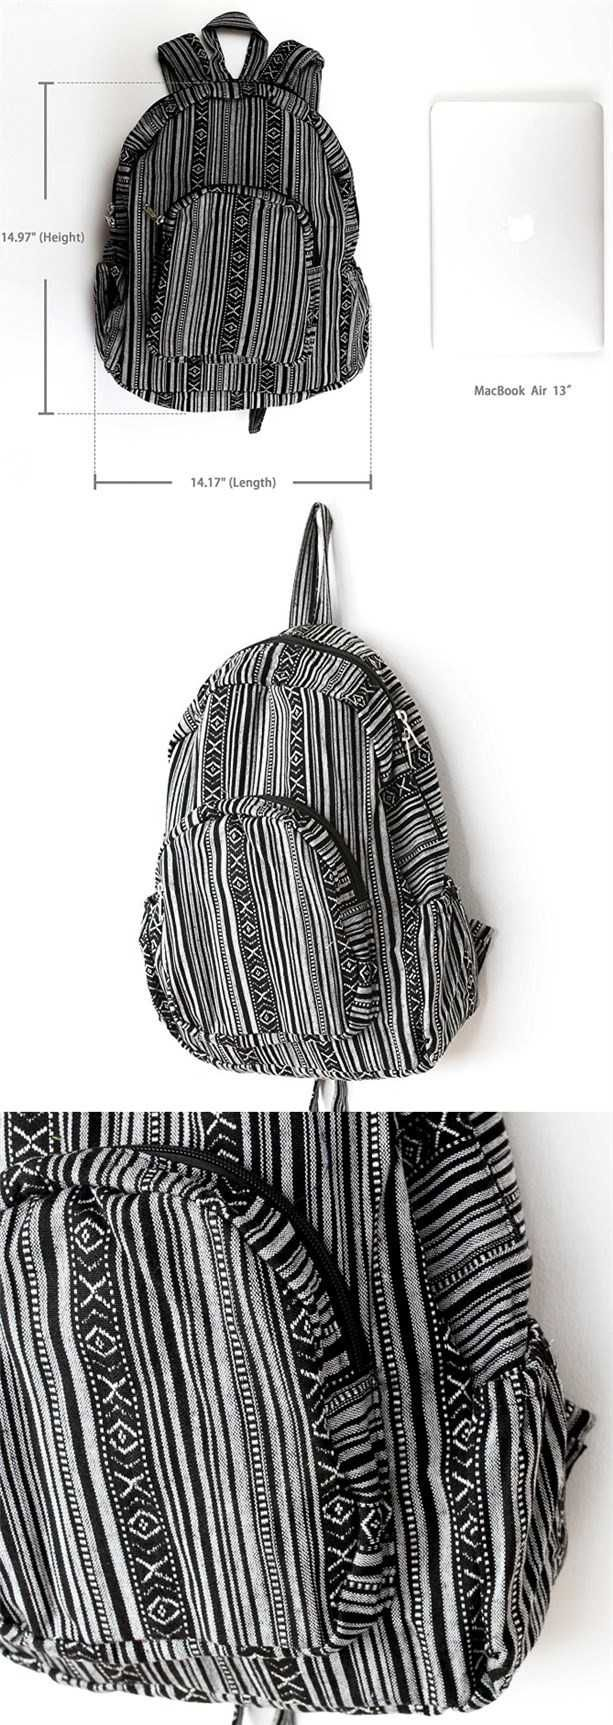 $24.99 Amazon+Free Shipping 3 day,striped backpack black and white canvase backpack schools cute travel backpack small